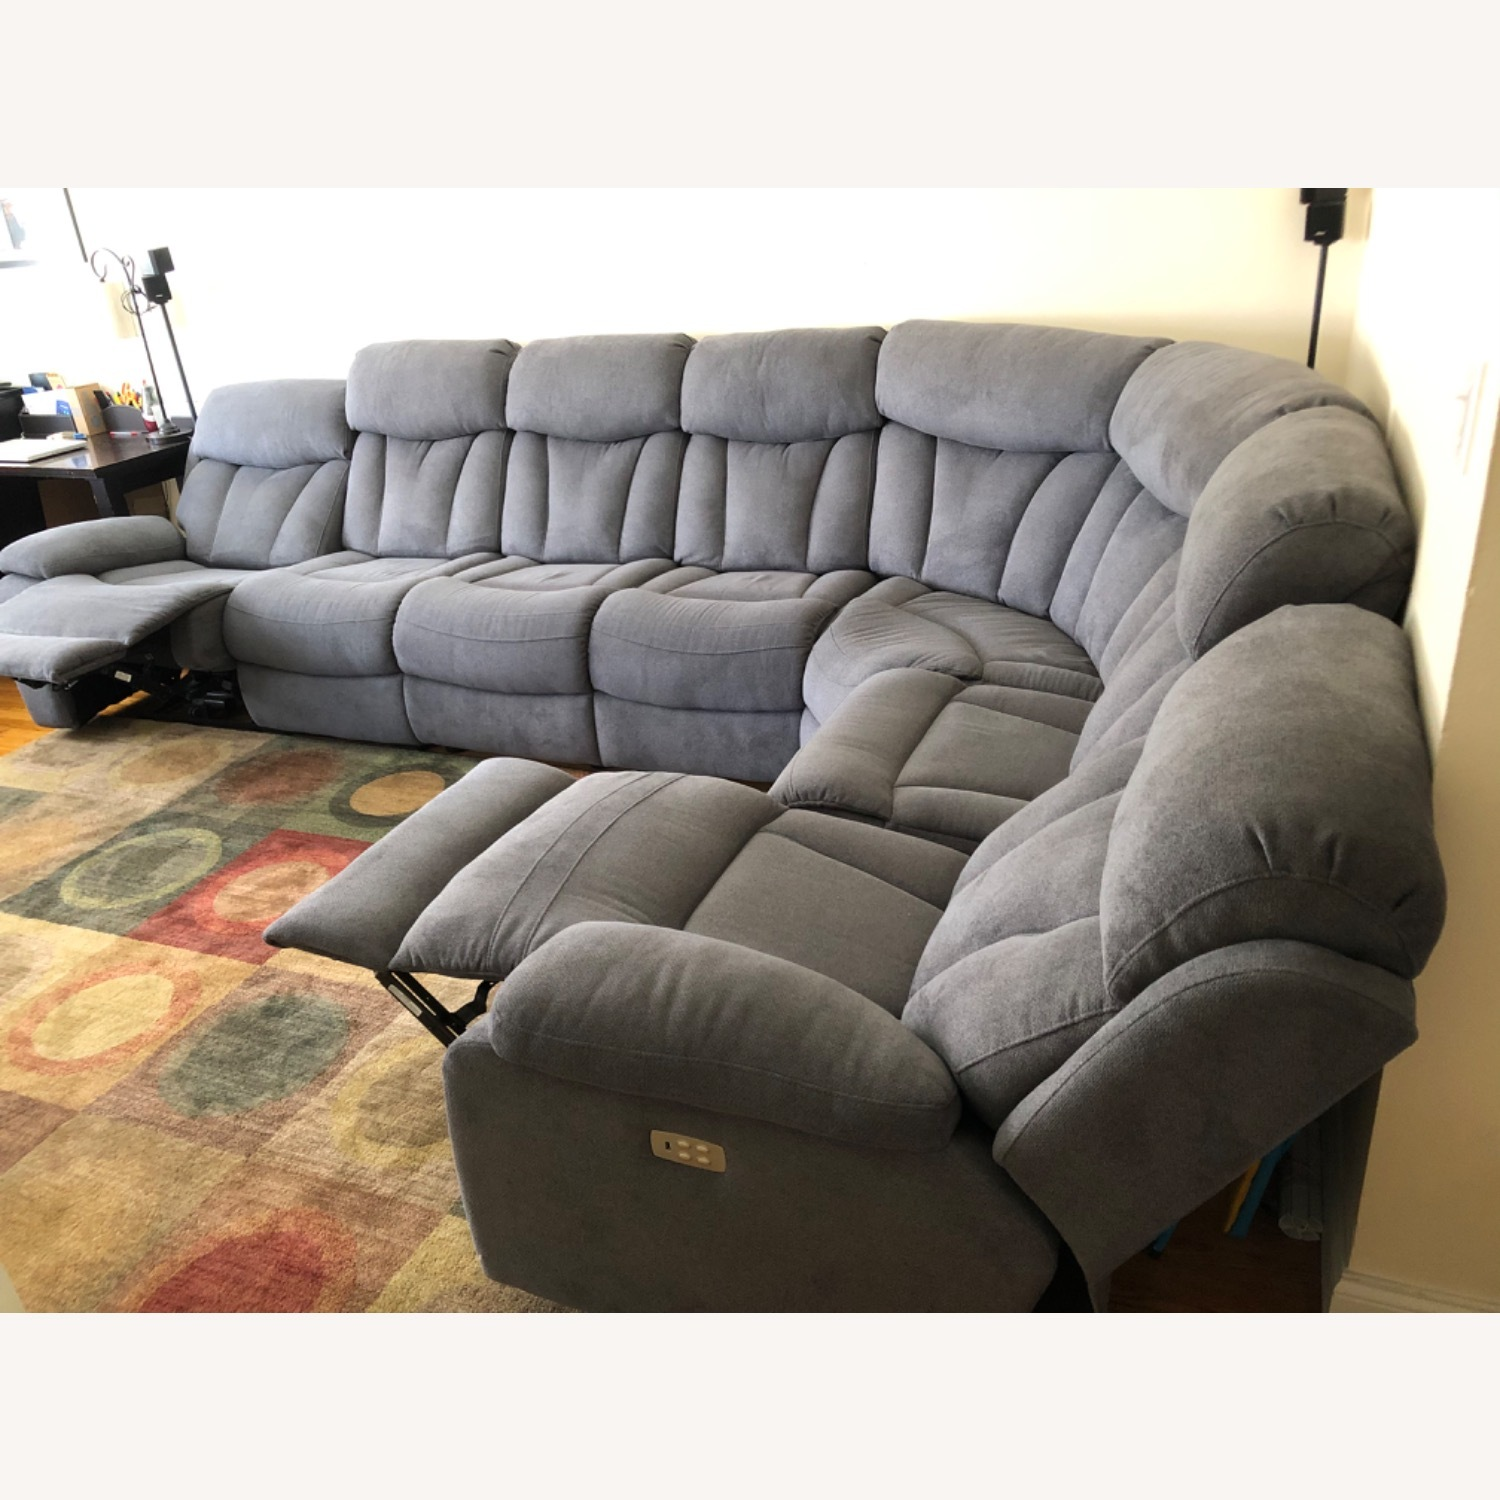 Raymour & Flanigan Connell Power Recliner Sectional - image-2